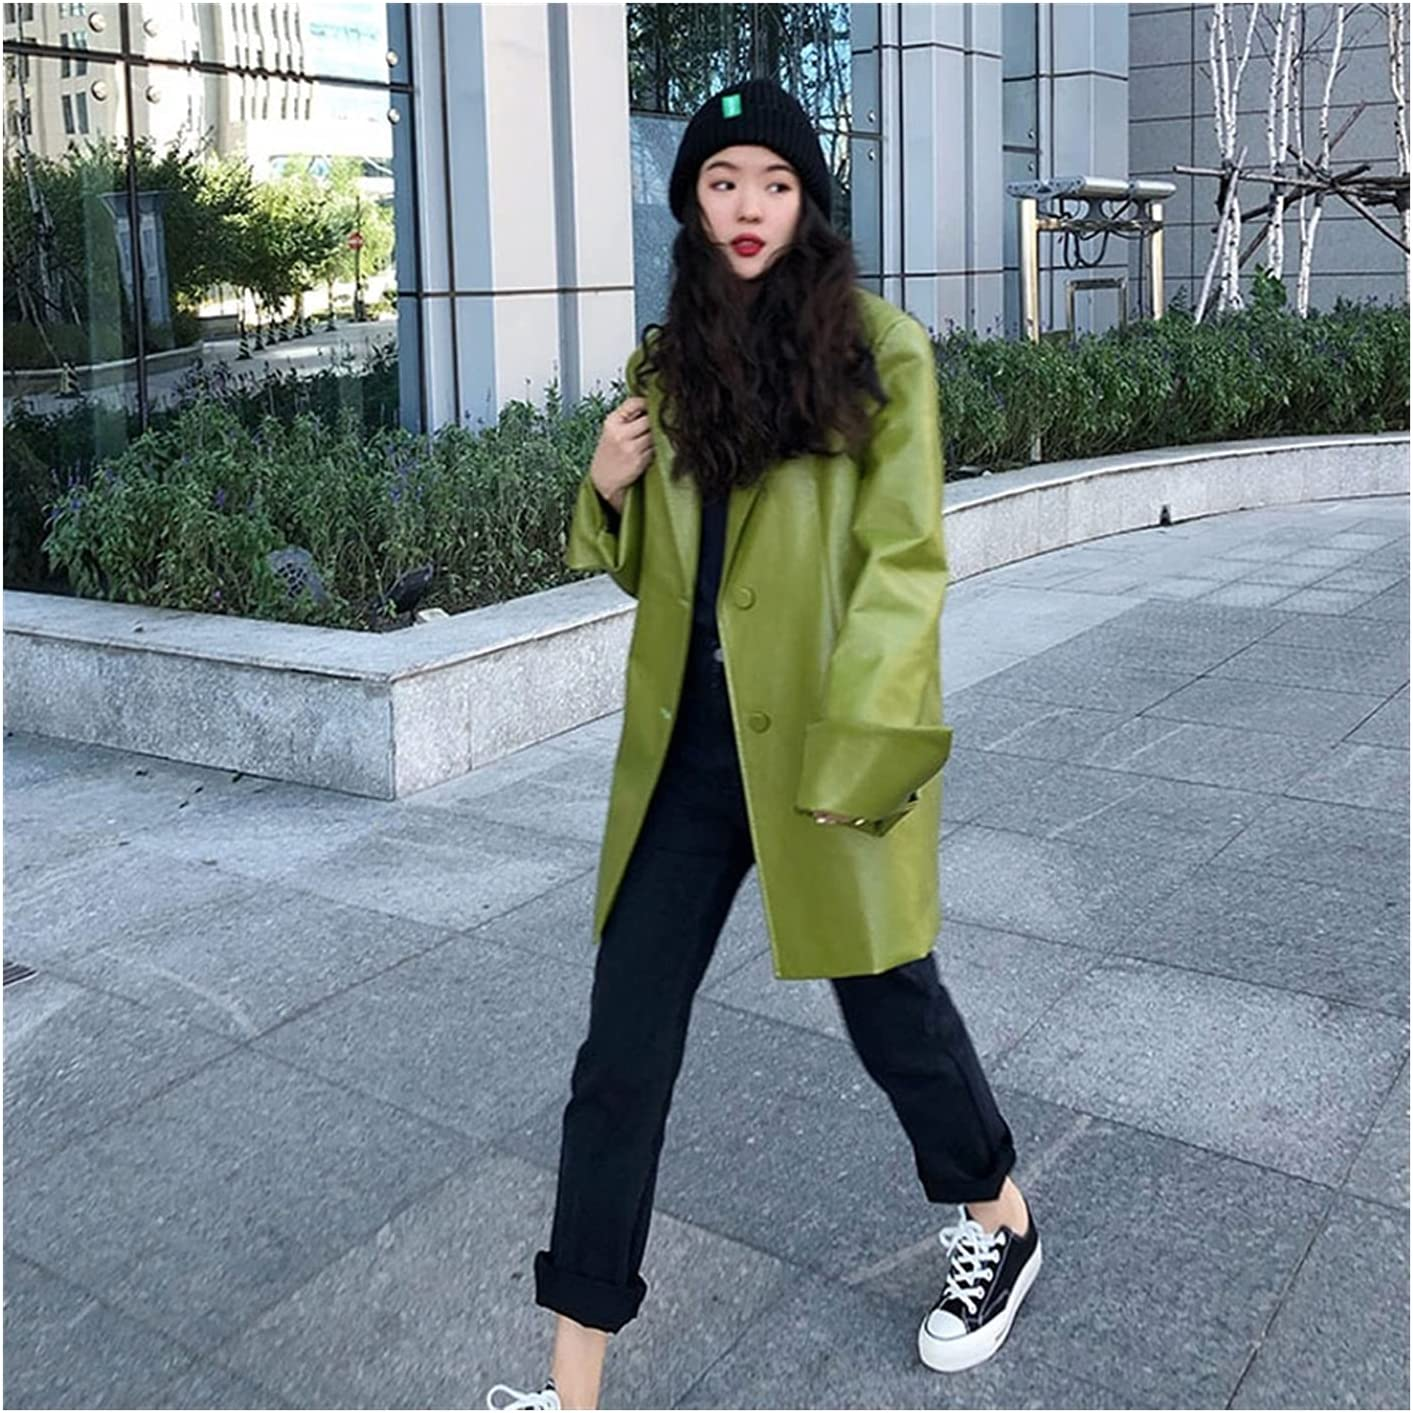 Loose Fit Solid Color Pu Leather Jacket Lapel Long Sleeve Women Coat Tide Spring Leather Coat (Color : Green, Size : S.)